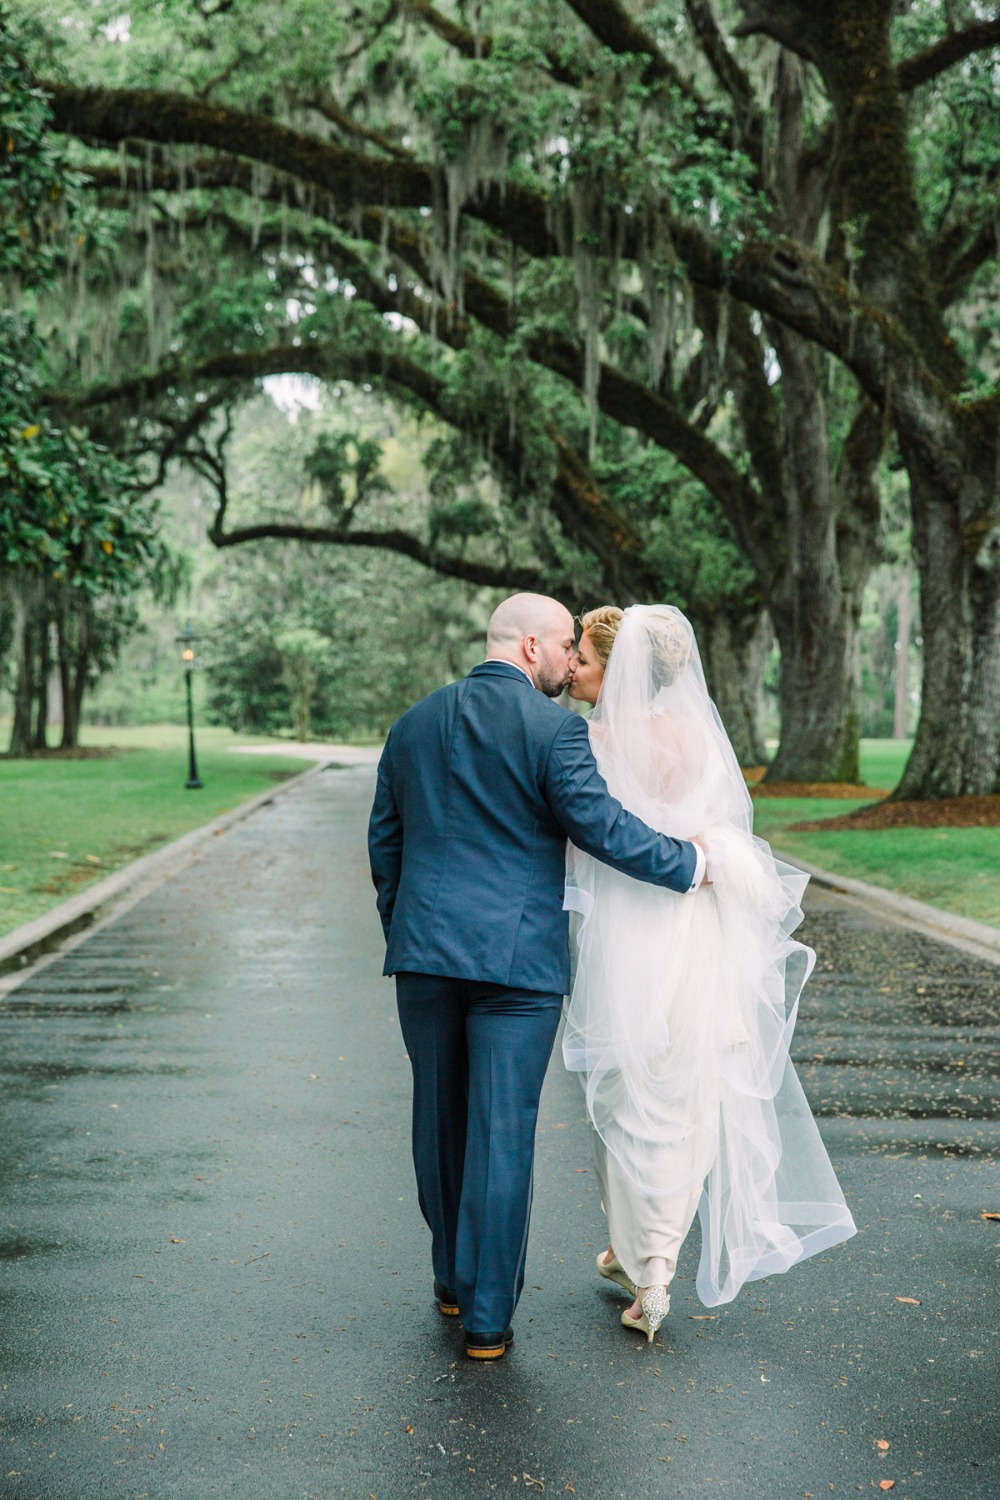 Winter wedding in the rain at Ford Plantation